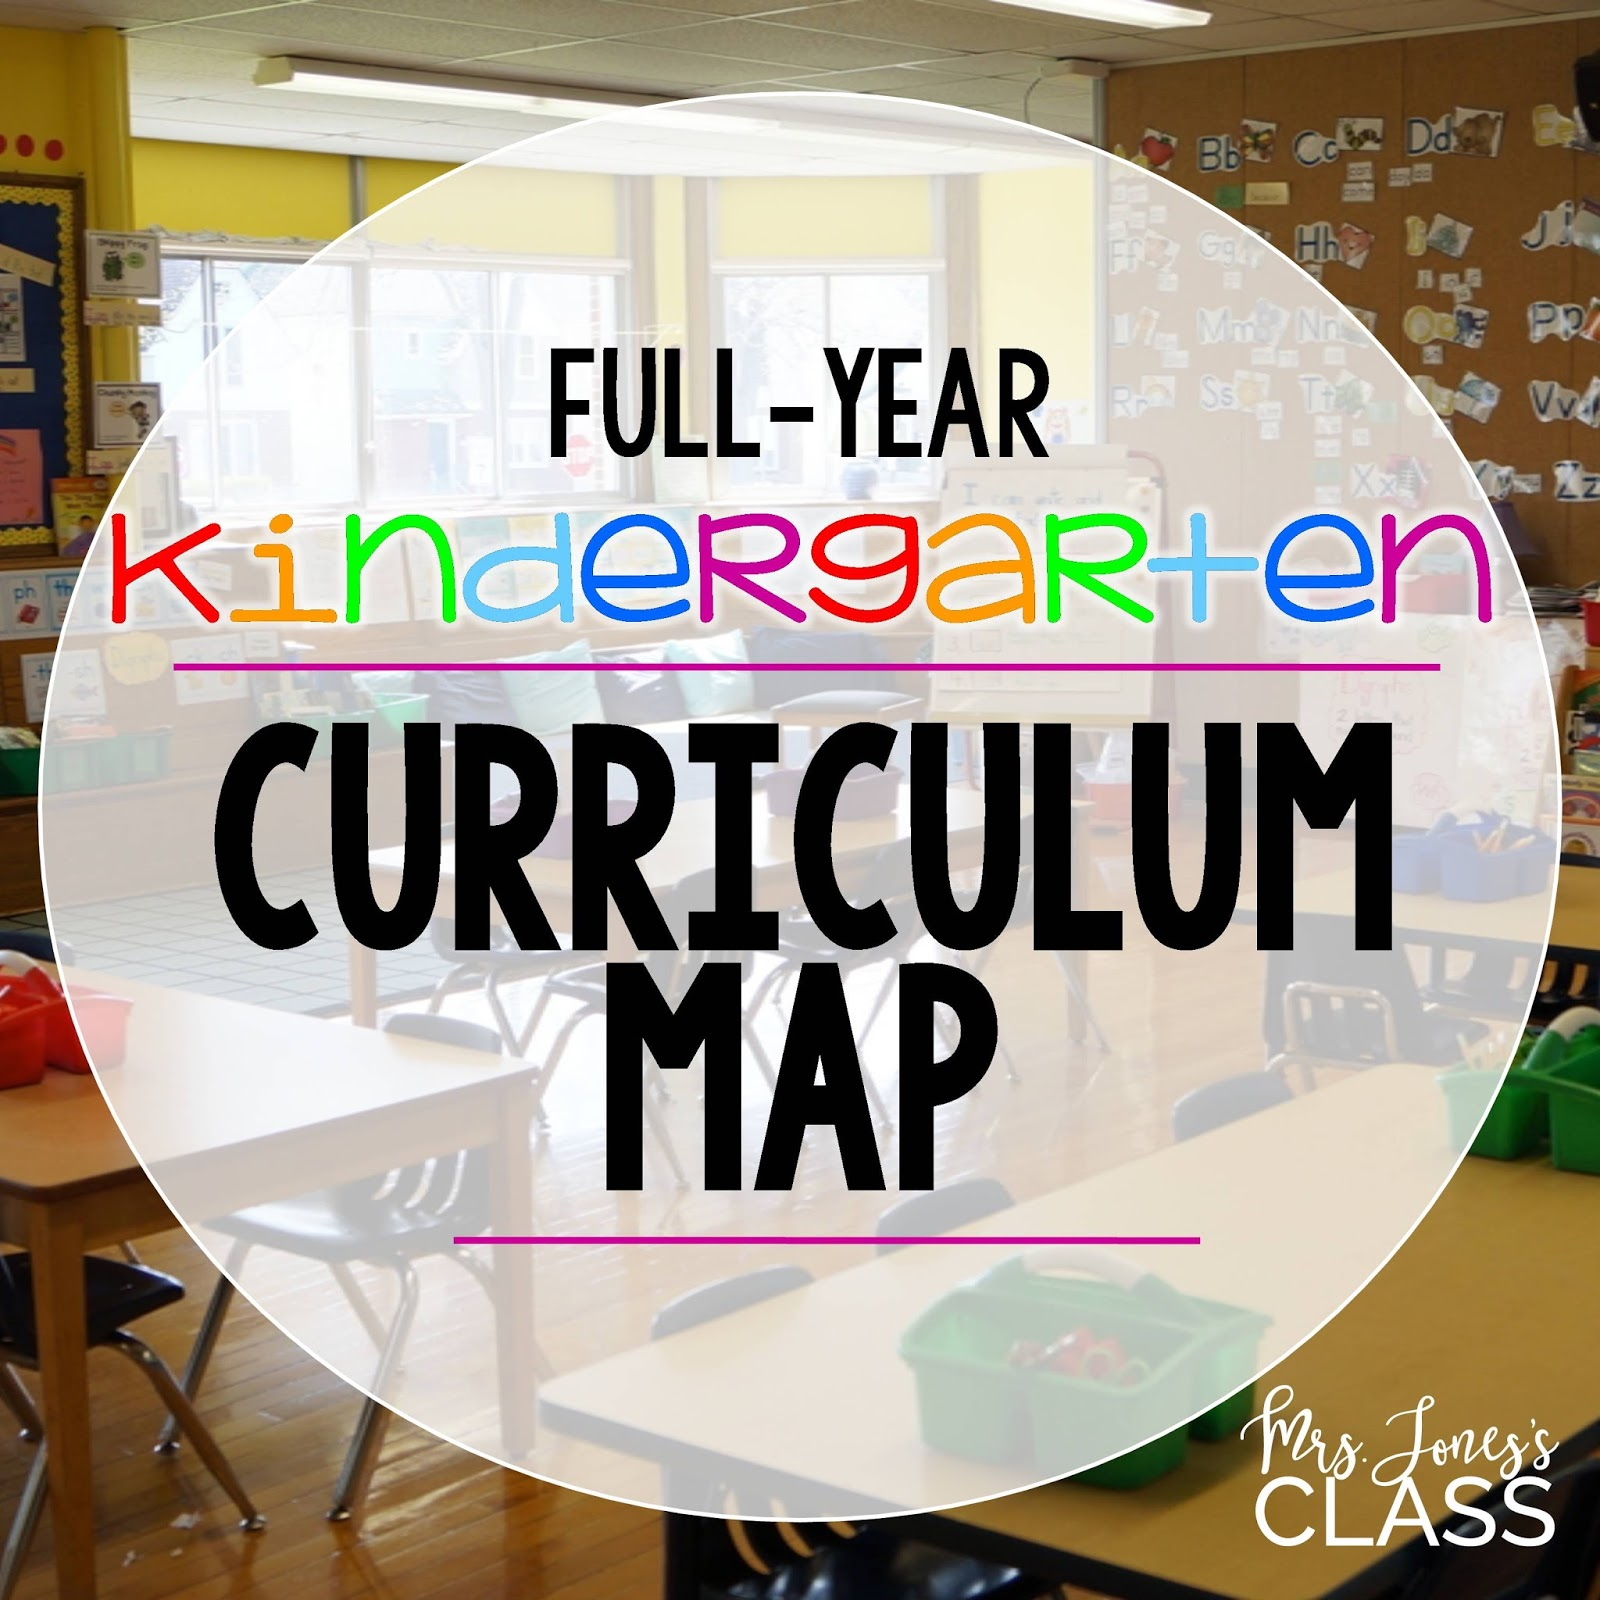 Full-Year Kindergarten Curriculum Map - Mrs. Jones\'s Kindergarten